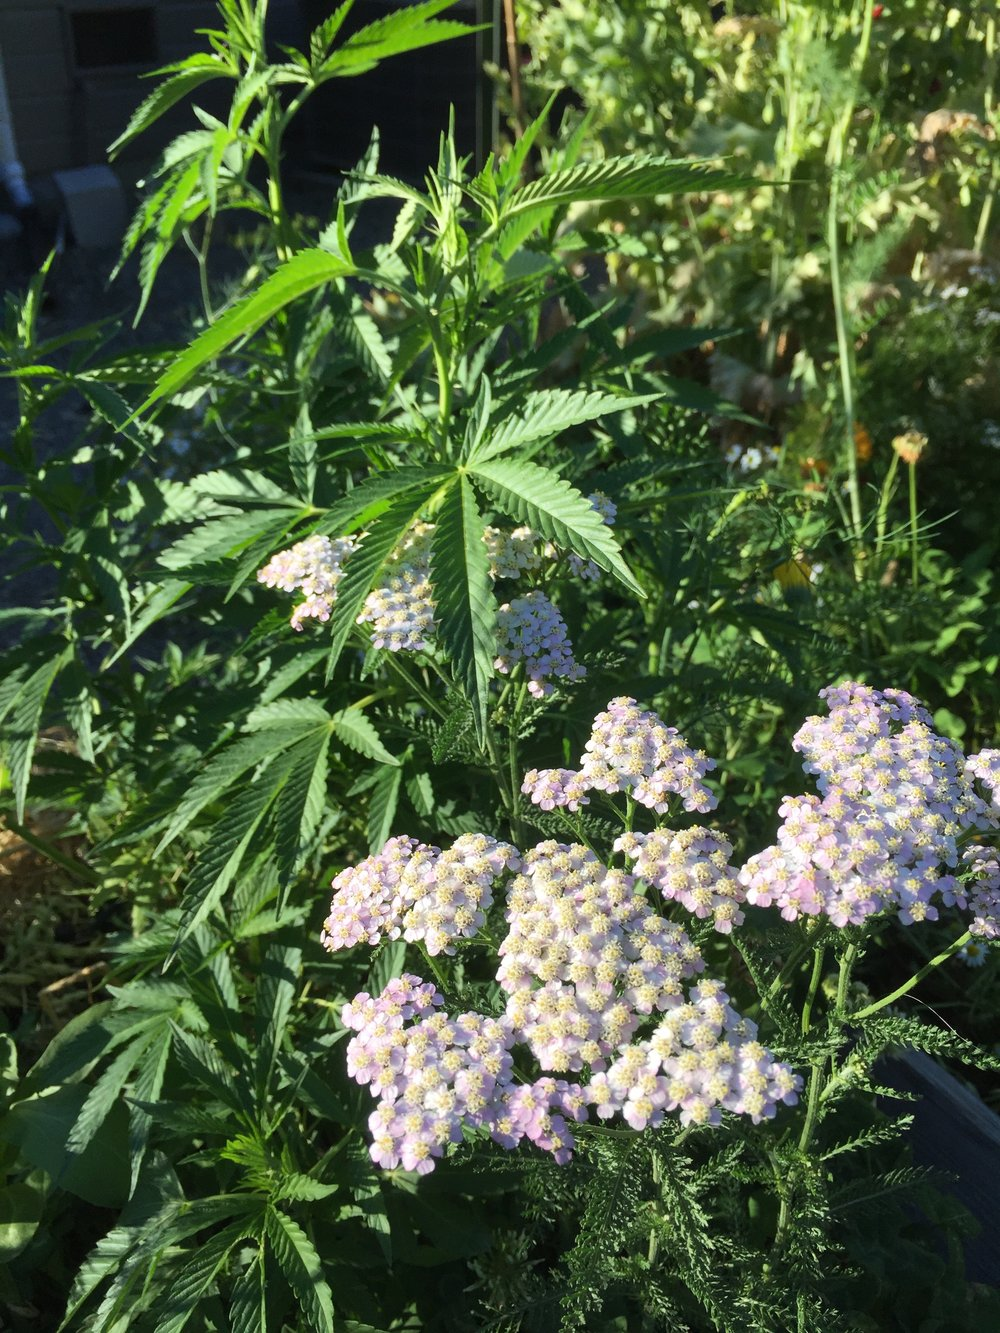 Yarrow intercropped with cannabis. Yarrow attracts a wide array of the different beneficial insects.